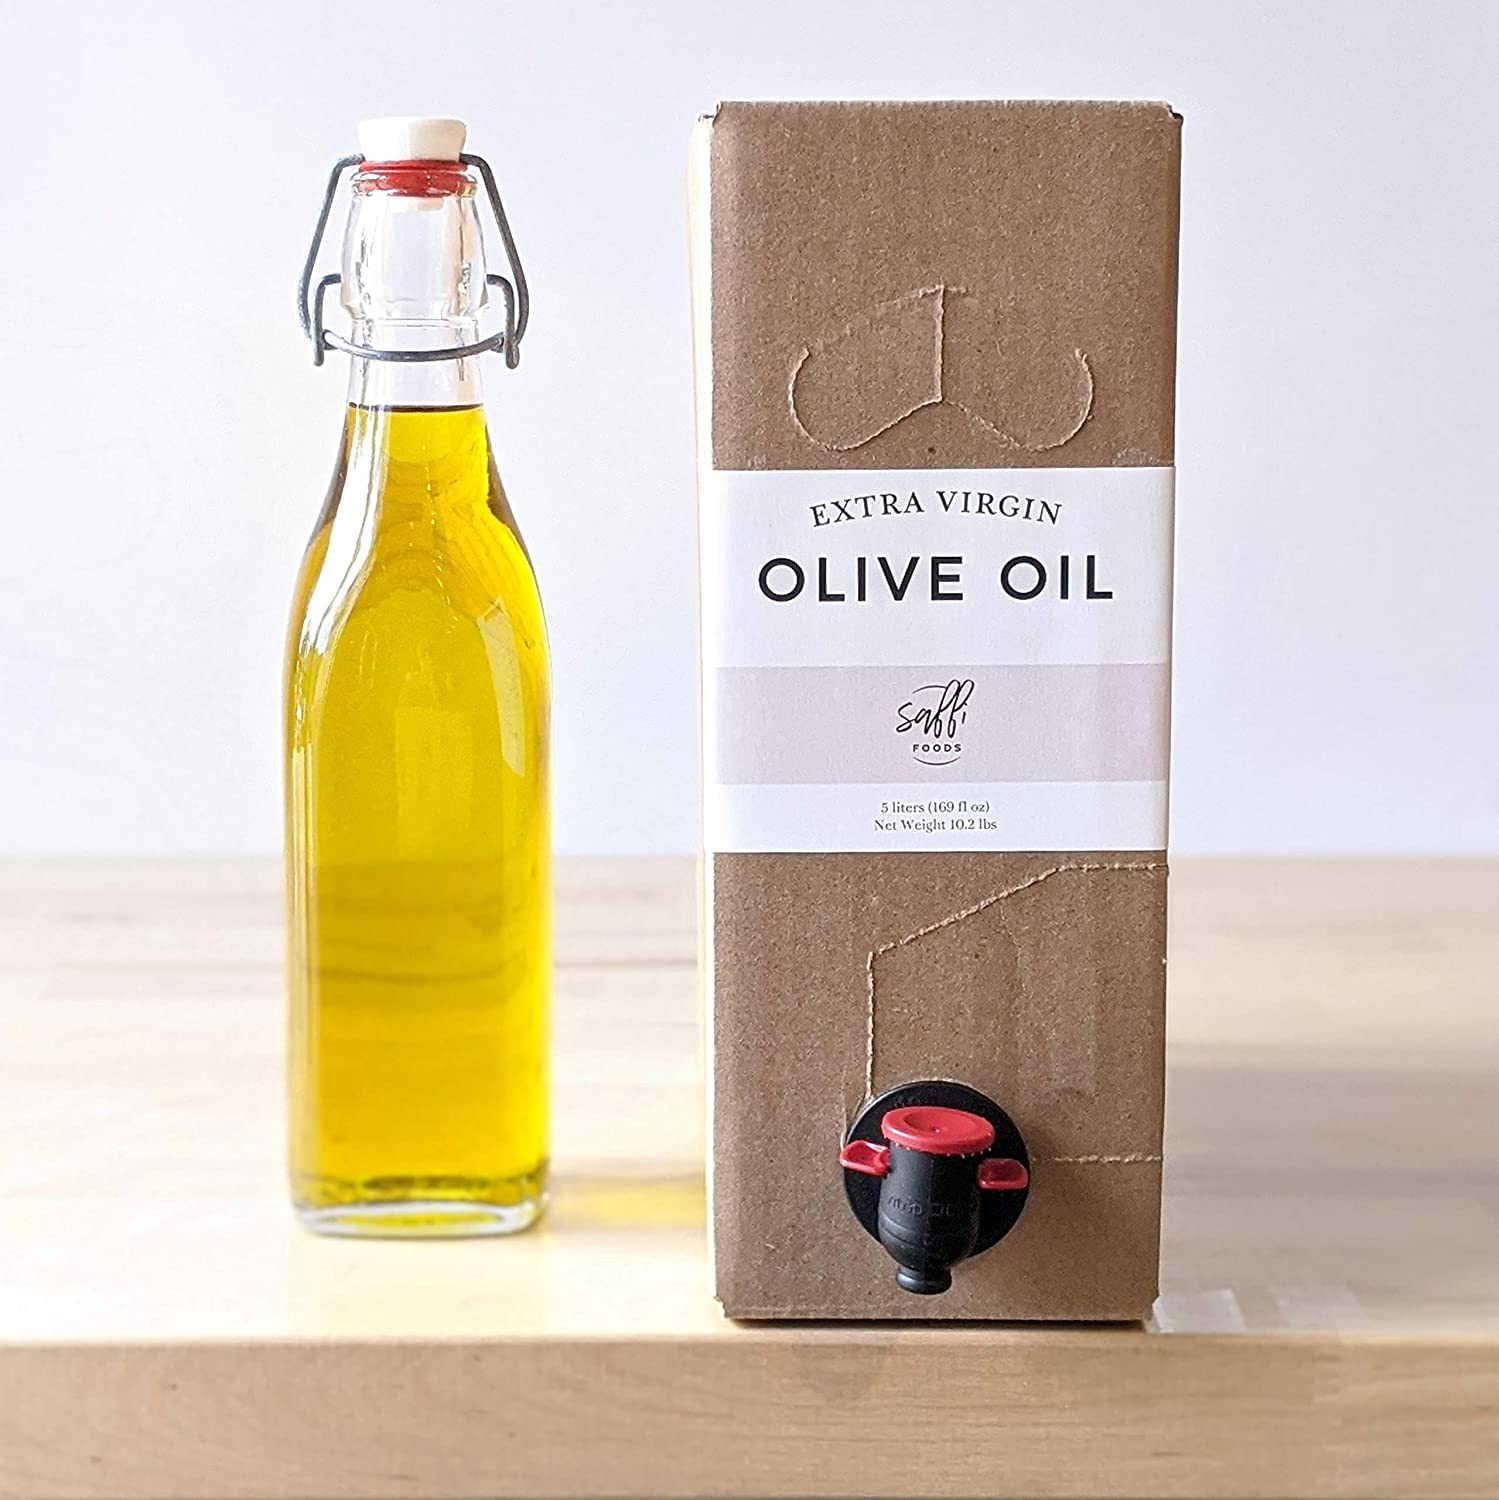 First Cold Pressed Extra Virgin Olive Oil by Saffi Foods, Unrefined, Full-Bodied Flavor, Perfect for Salad Dressings, Marinades, Naturally Gluten Free, Non-GMO, Bulk Eco Friendly, 5 liter Bag In Box